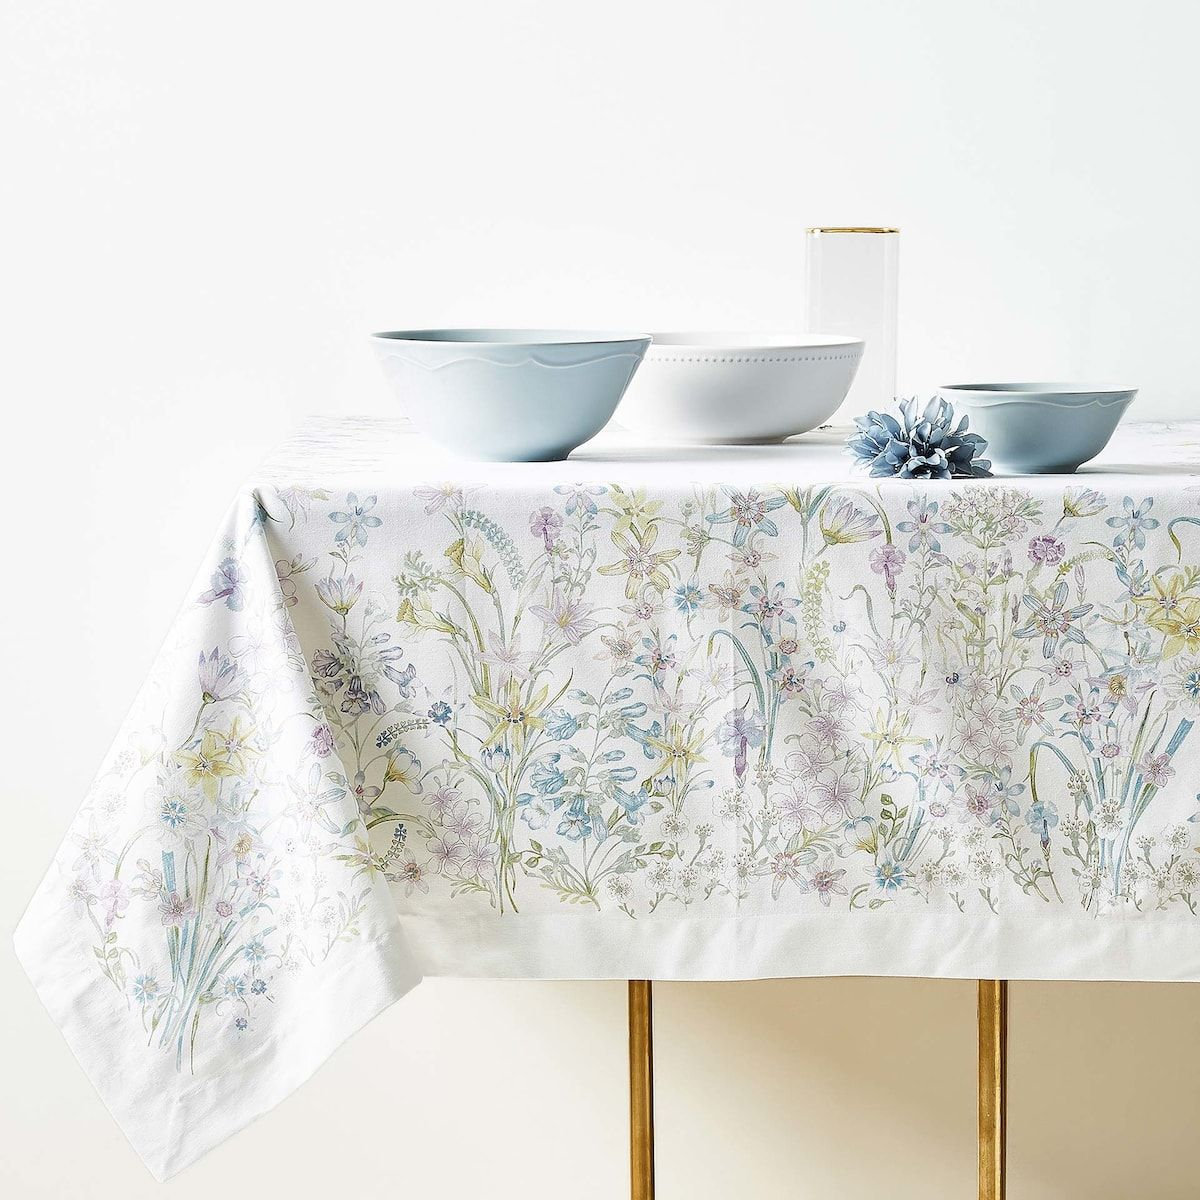 Image 1 Of The Product Floral Print Cotton Tablecloth With Border In 2020 Zara Home Home Home Accessories